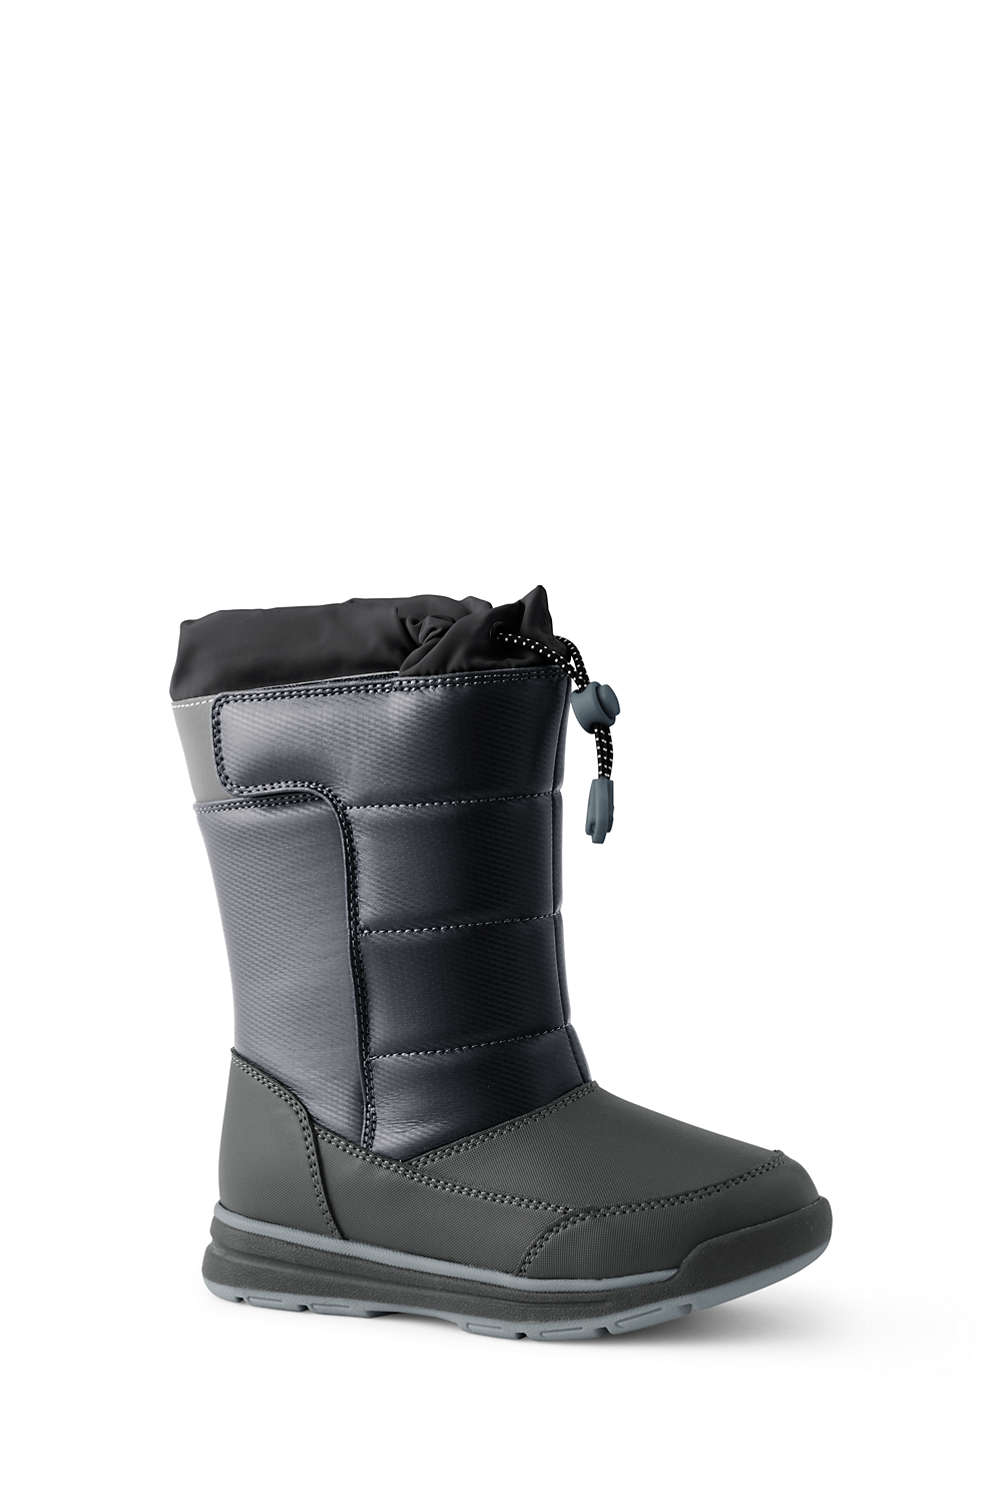 kids snow flurry winter boots from lands end